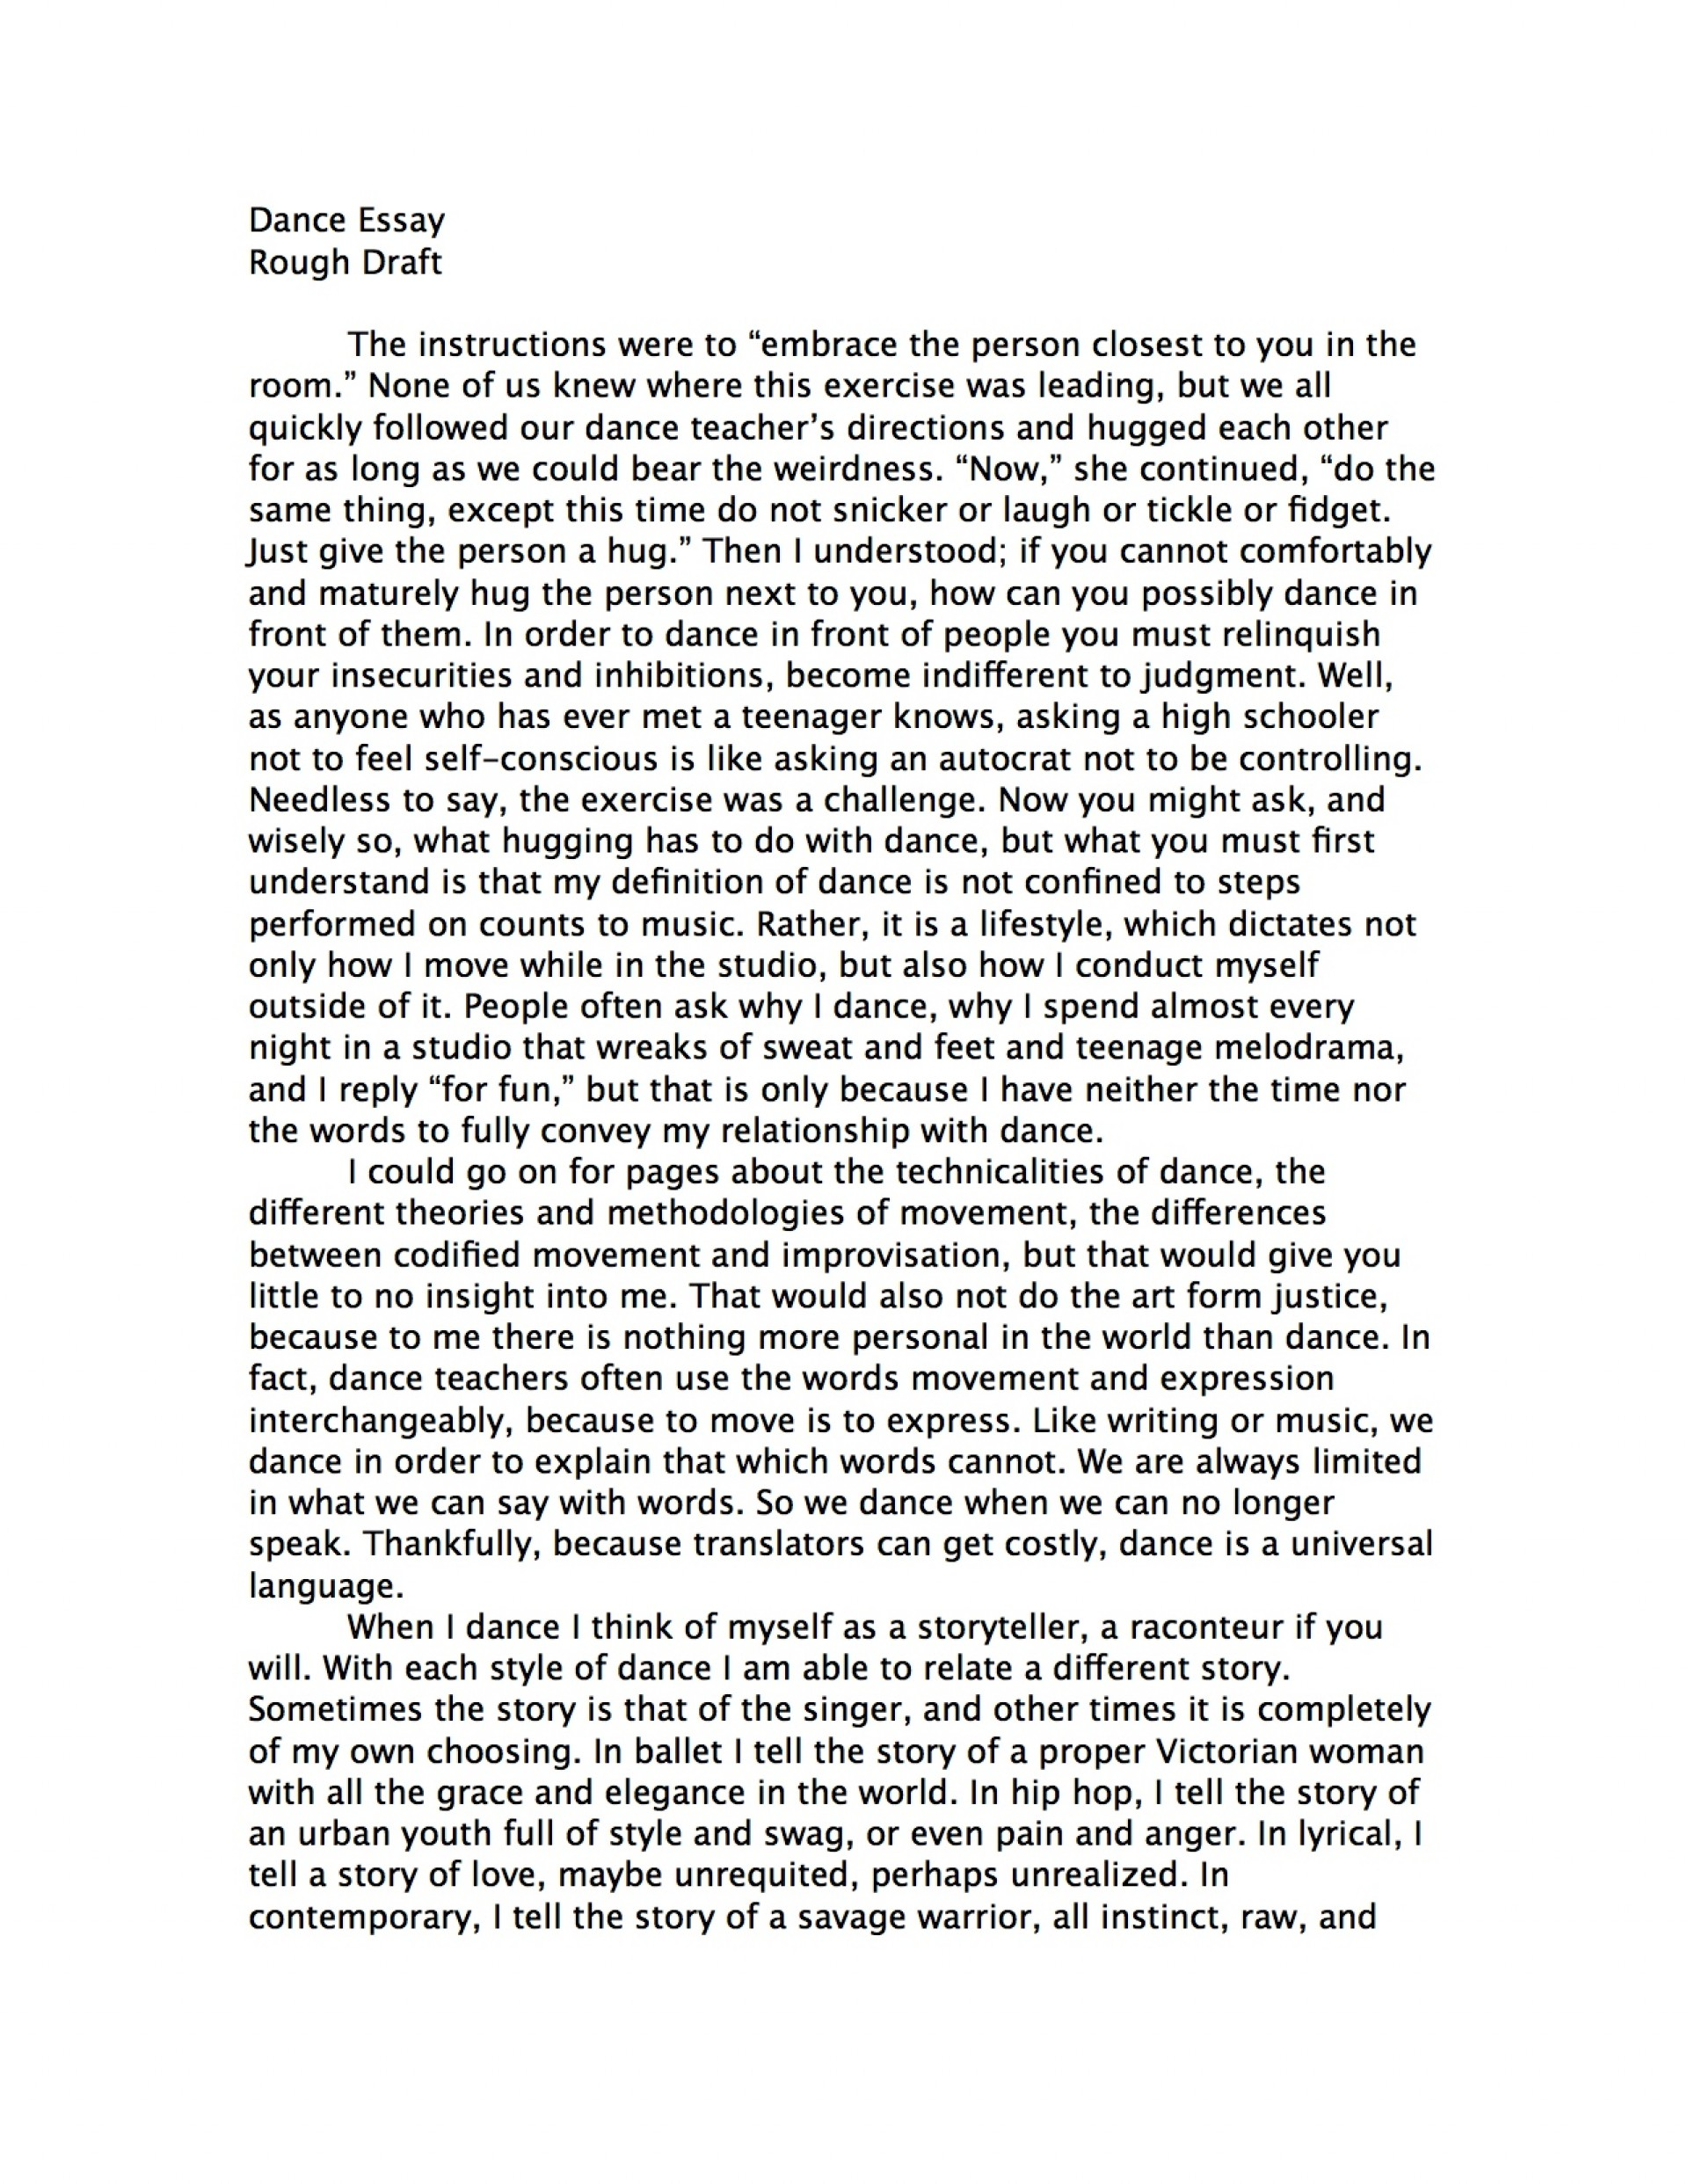 001 How To Start College Essay Example Proposal Amazing Essays Writing In About Failure Rebecca Nueman Dance Your Background Yourself Hook Off Good Examples Prompt Awful A Application 1920